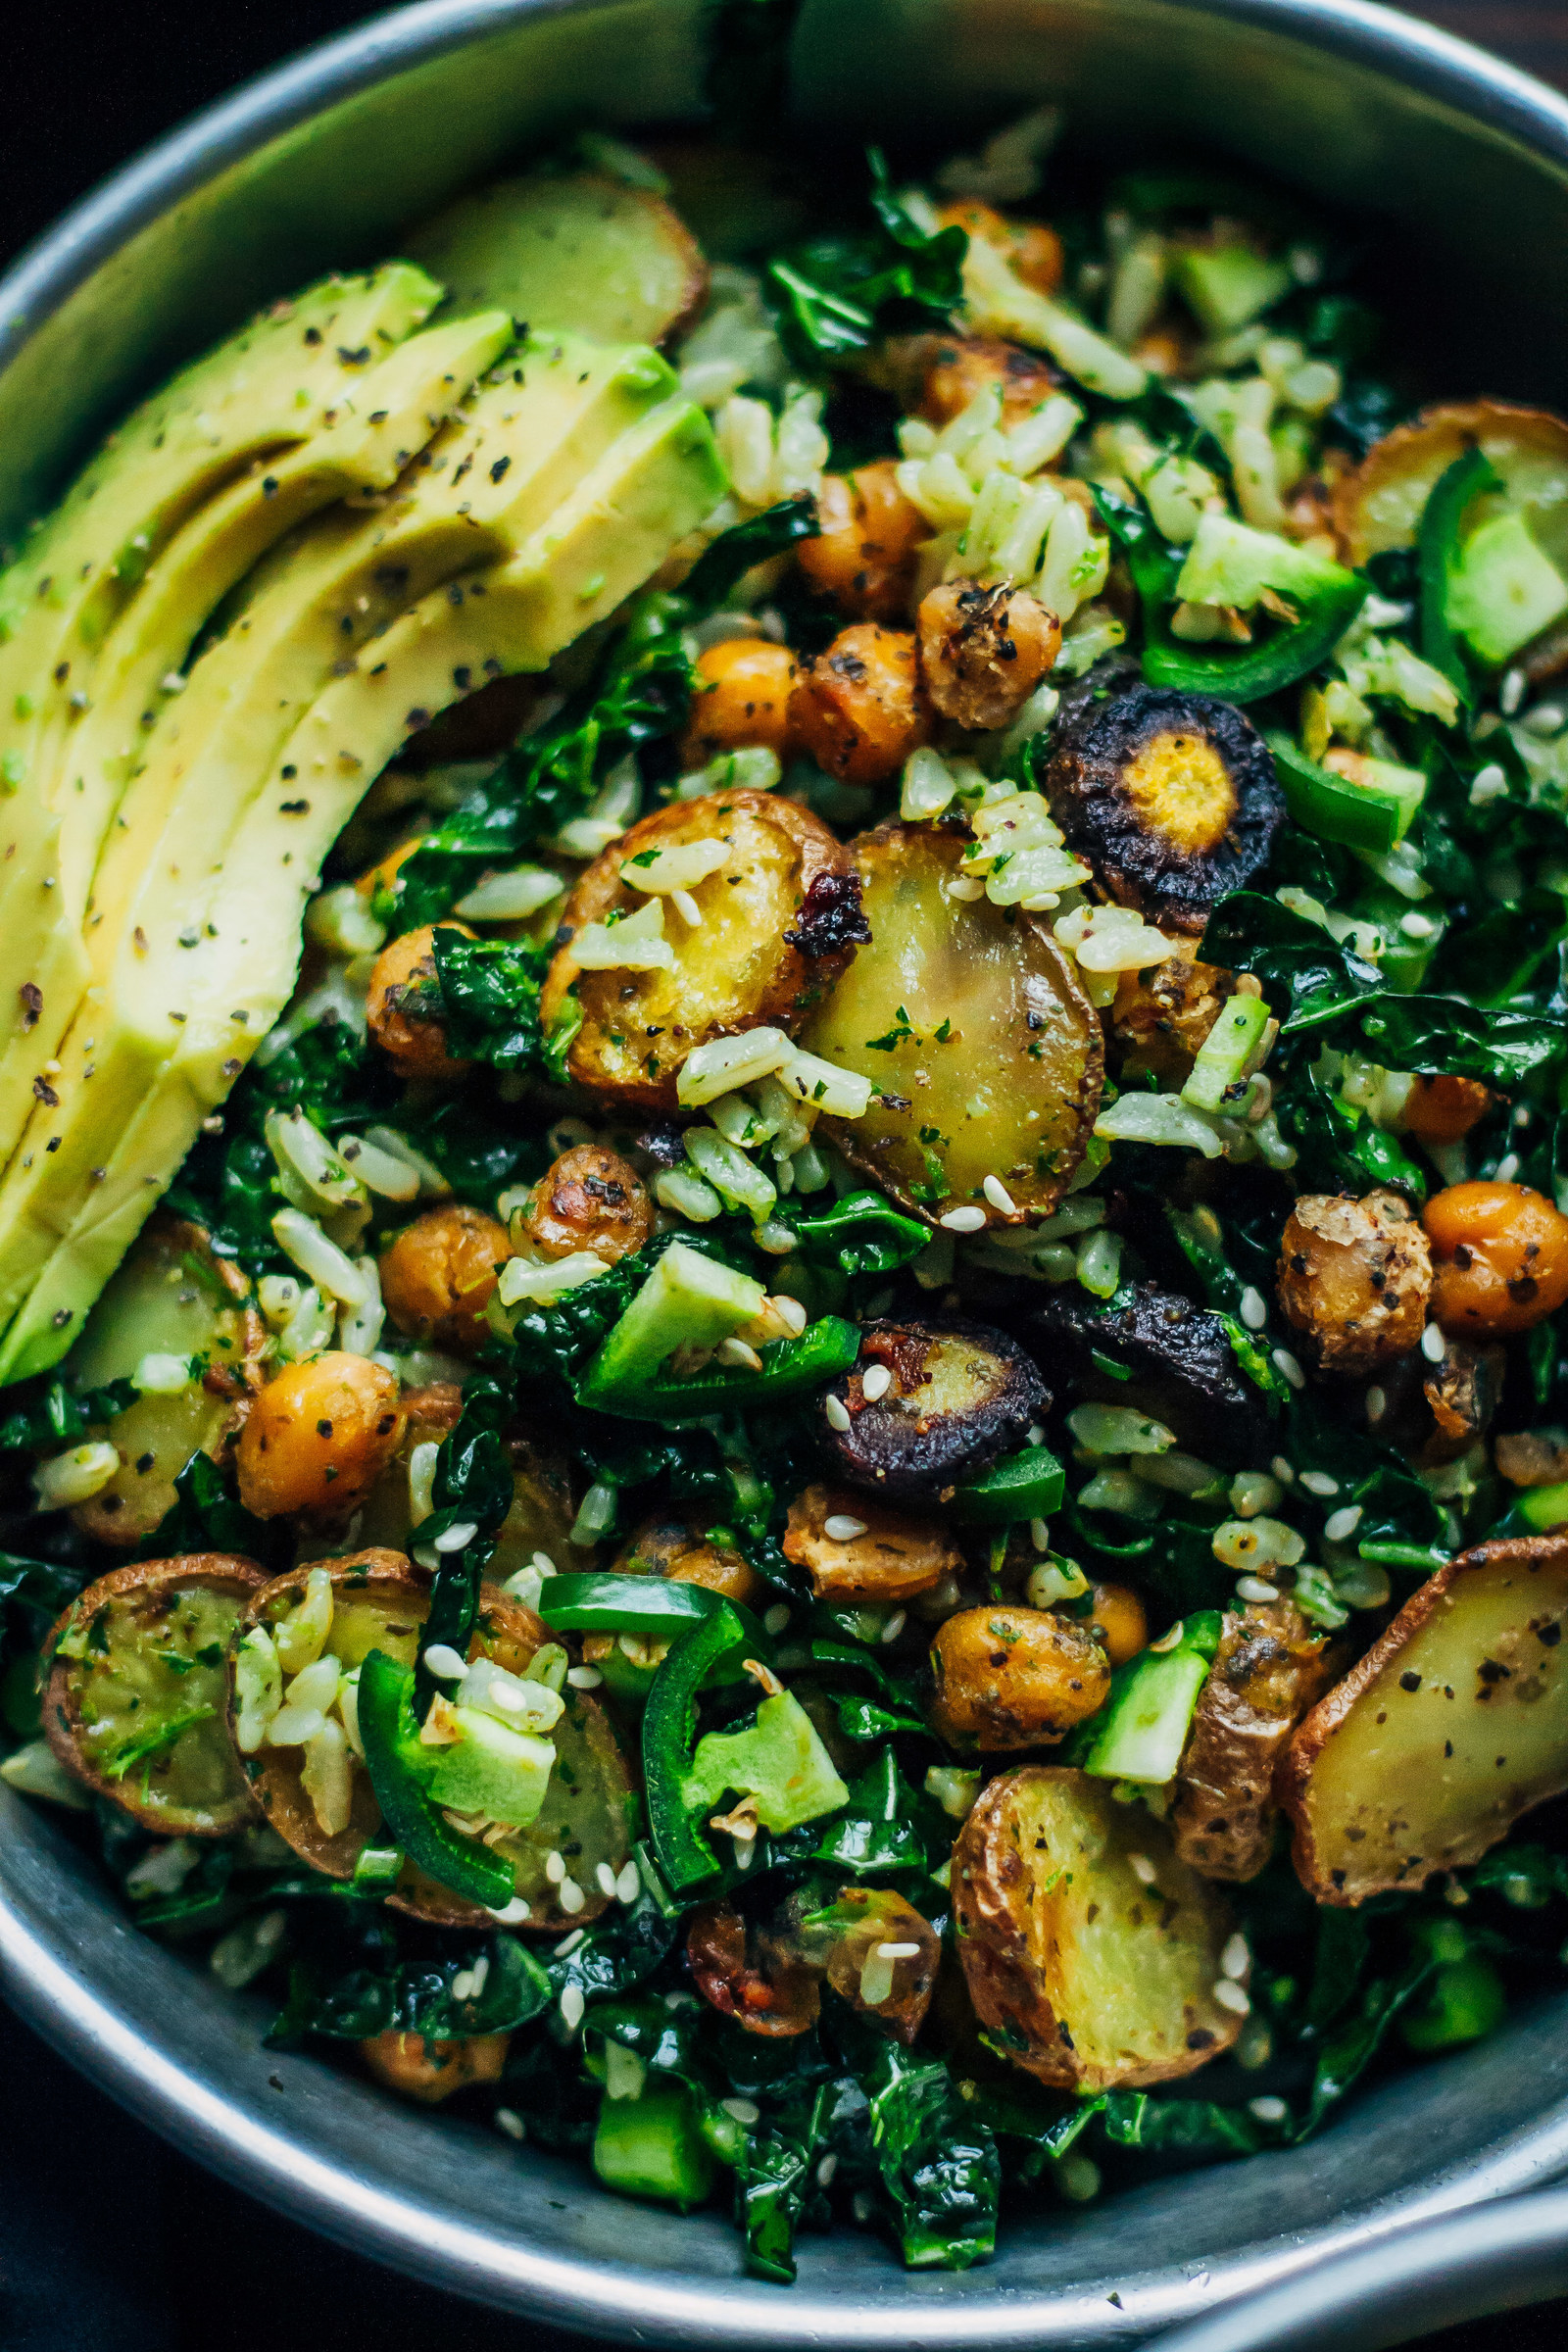 Loaded with roasted carrots, potatoes, chickpeas, brown rice, and avocado, this is the kind of feel-good salad you'll start craving on the regular. Get the recipe.